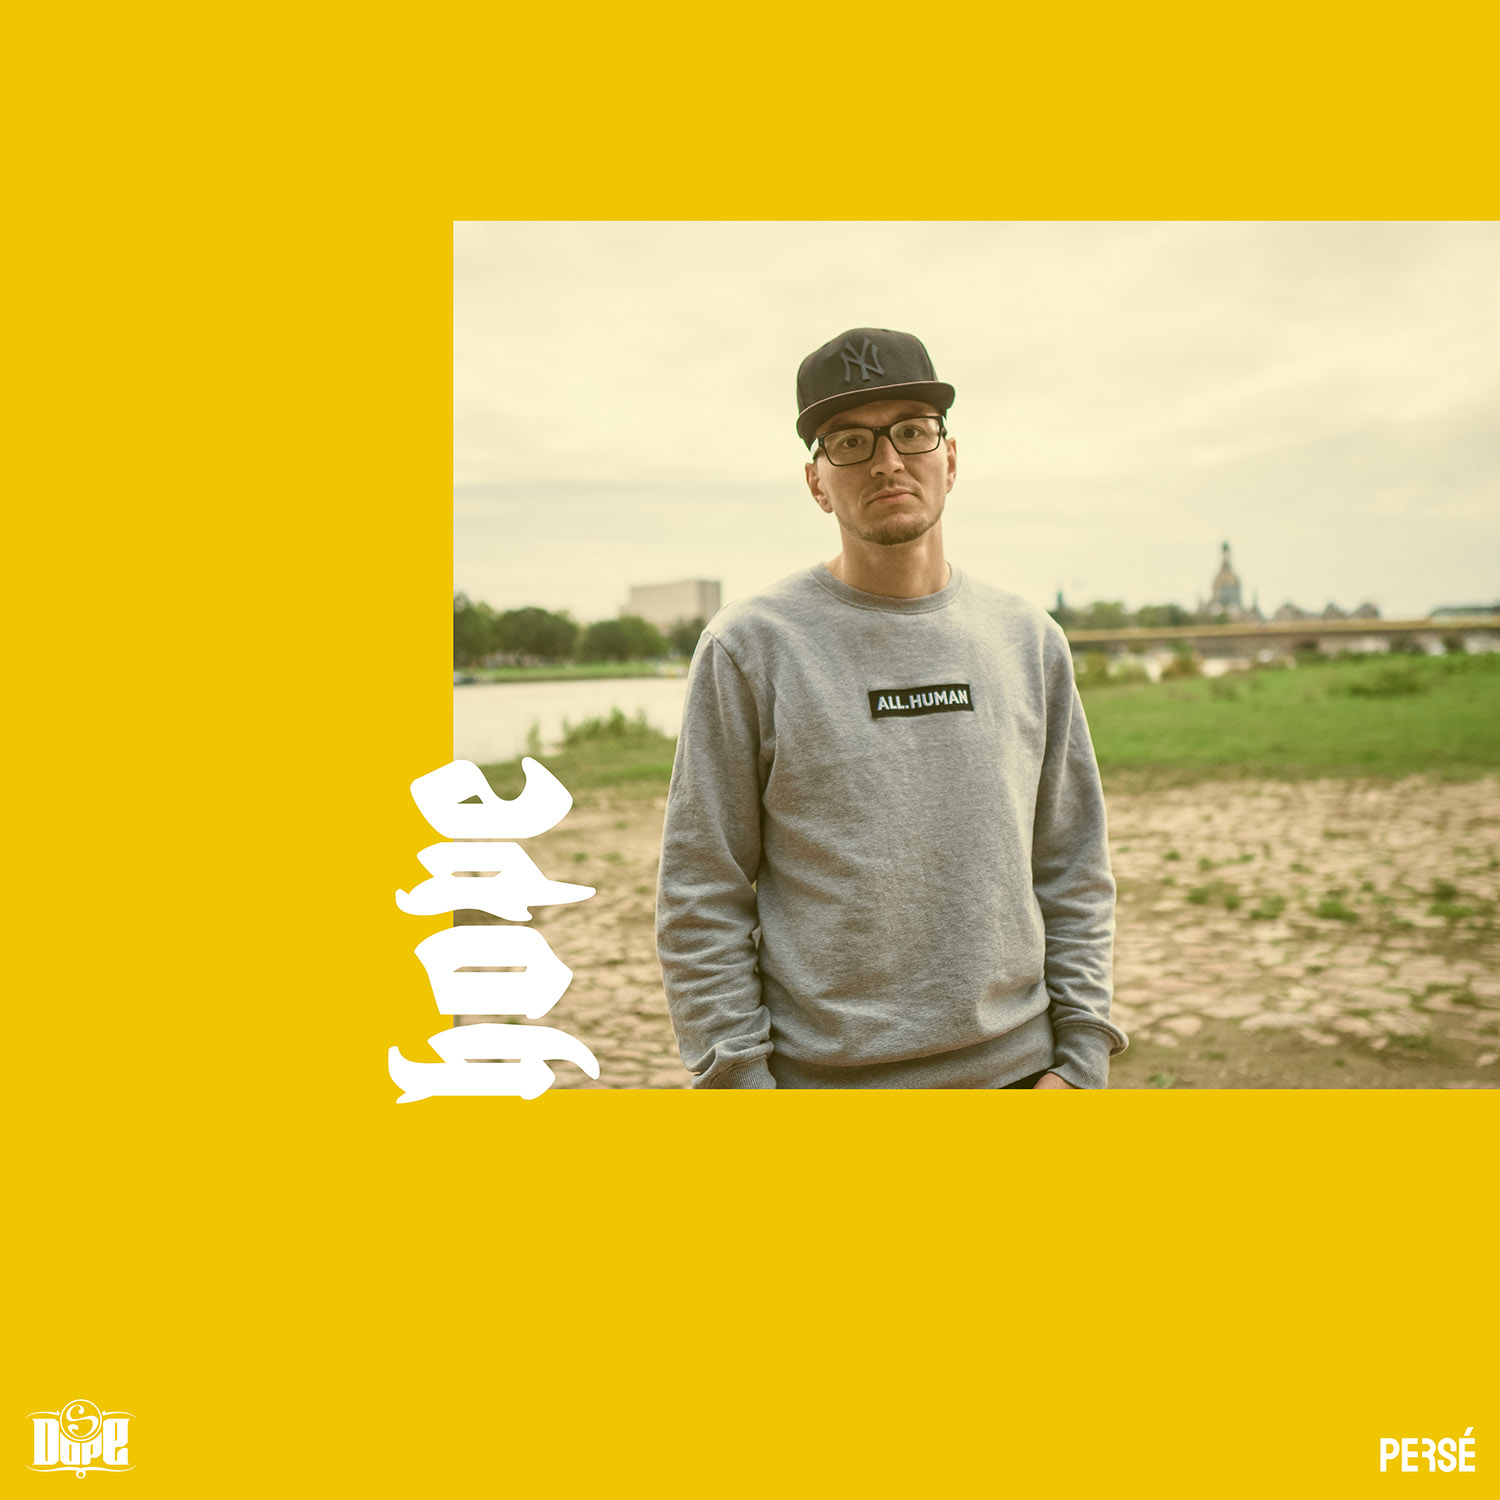 Upcoming: Persé - Hope [Video]